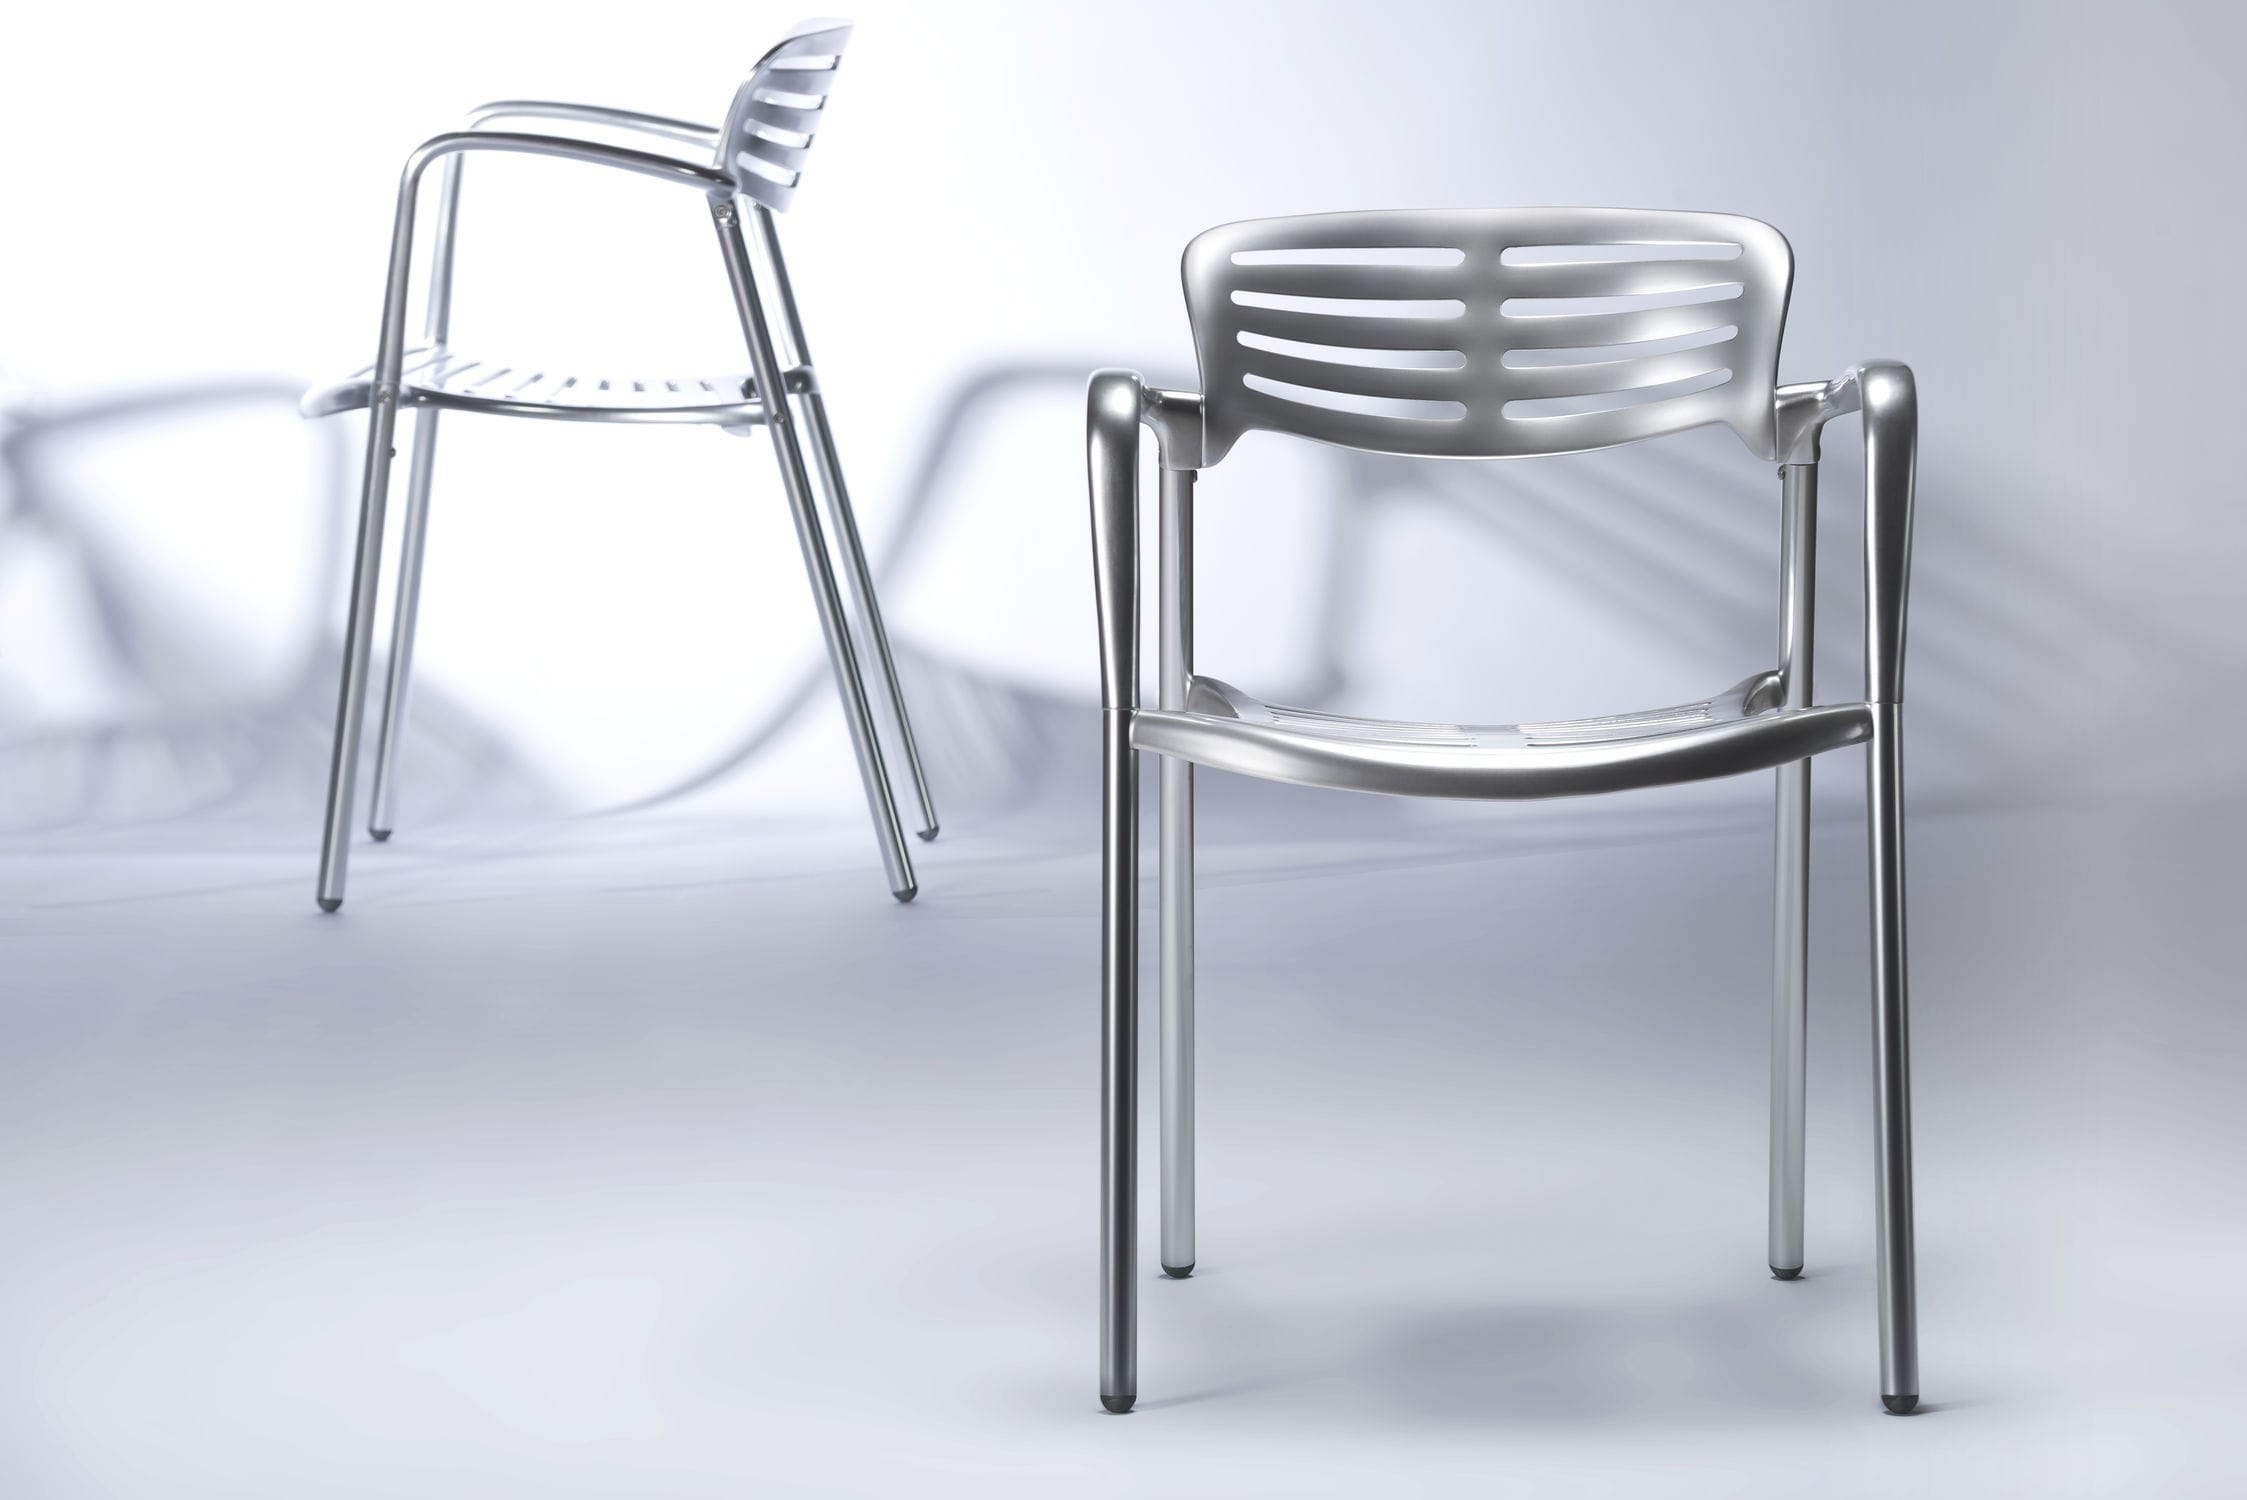 resols resols contemporary chair polished aluminum cast aluminum  resols contemporary chair polished aluminum cast aluminum vela l contemporary chair polished aluminum cast aluminum contemporary